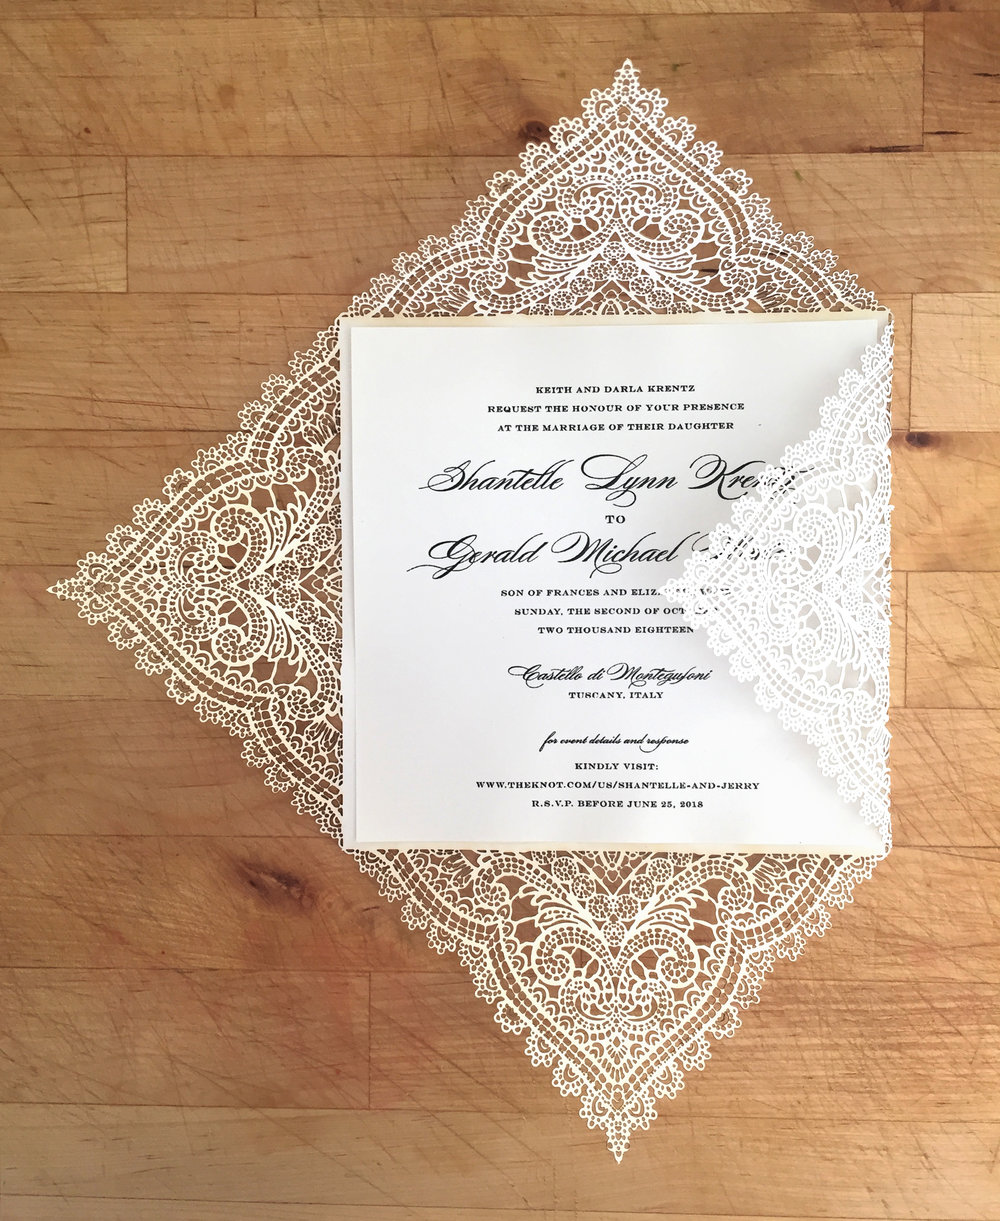 Chantilly Lace-Square Invite.jpg